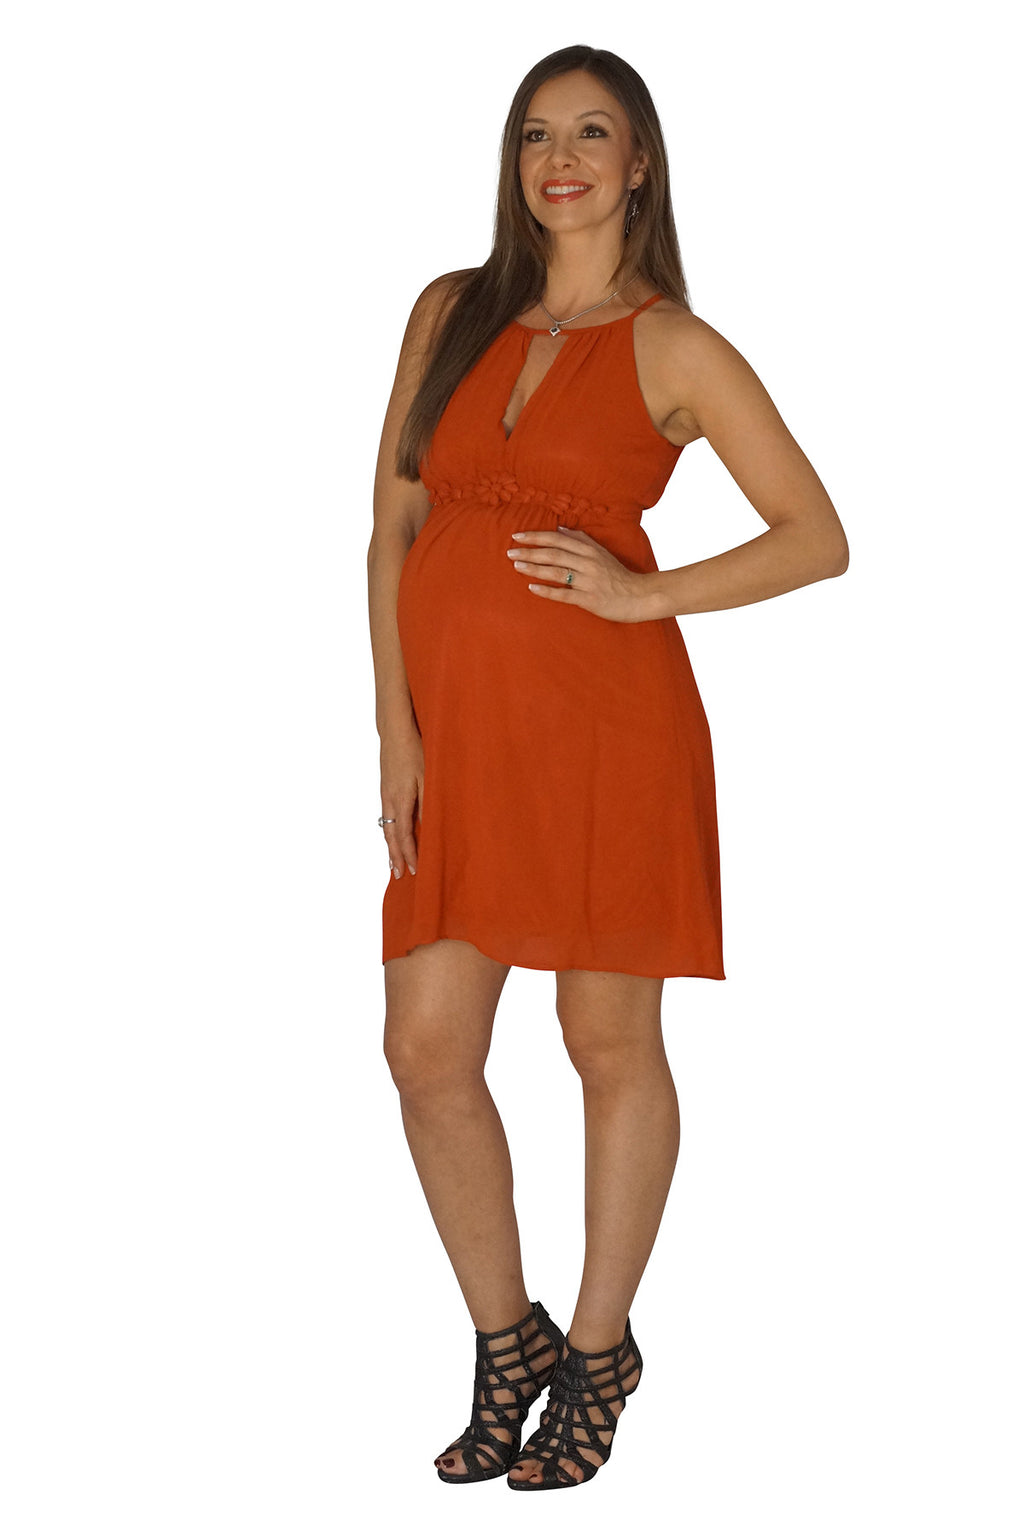 The Upper Rust Maternity Dress - Mommylicious